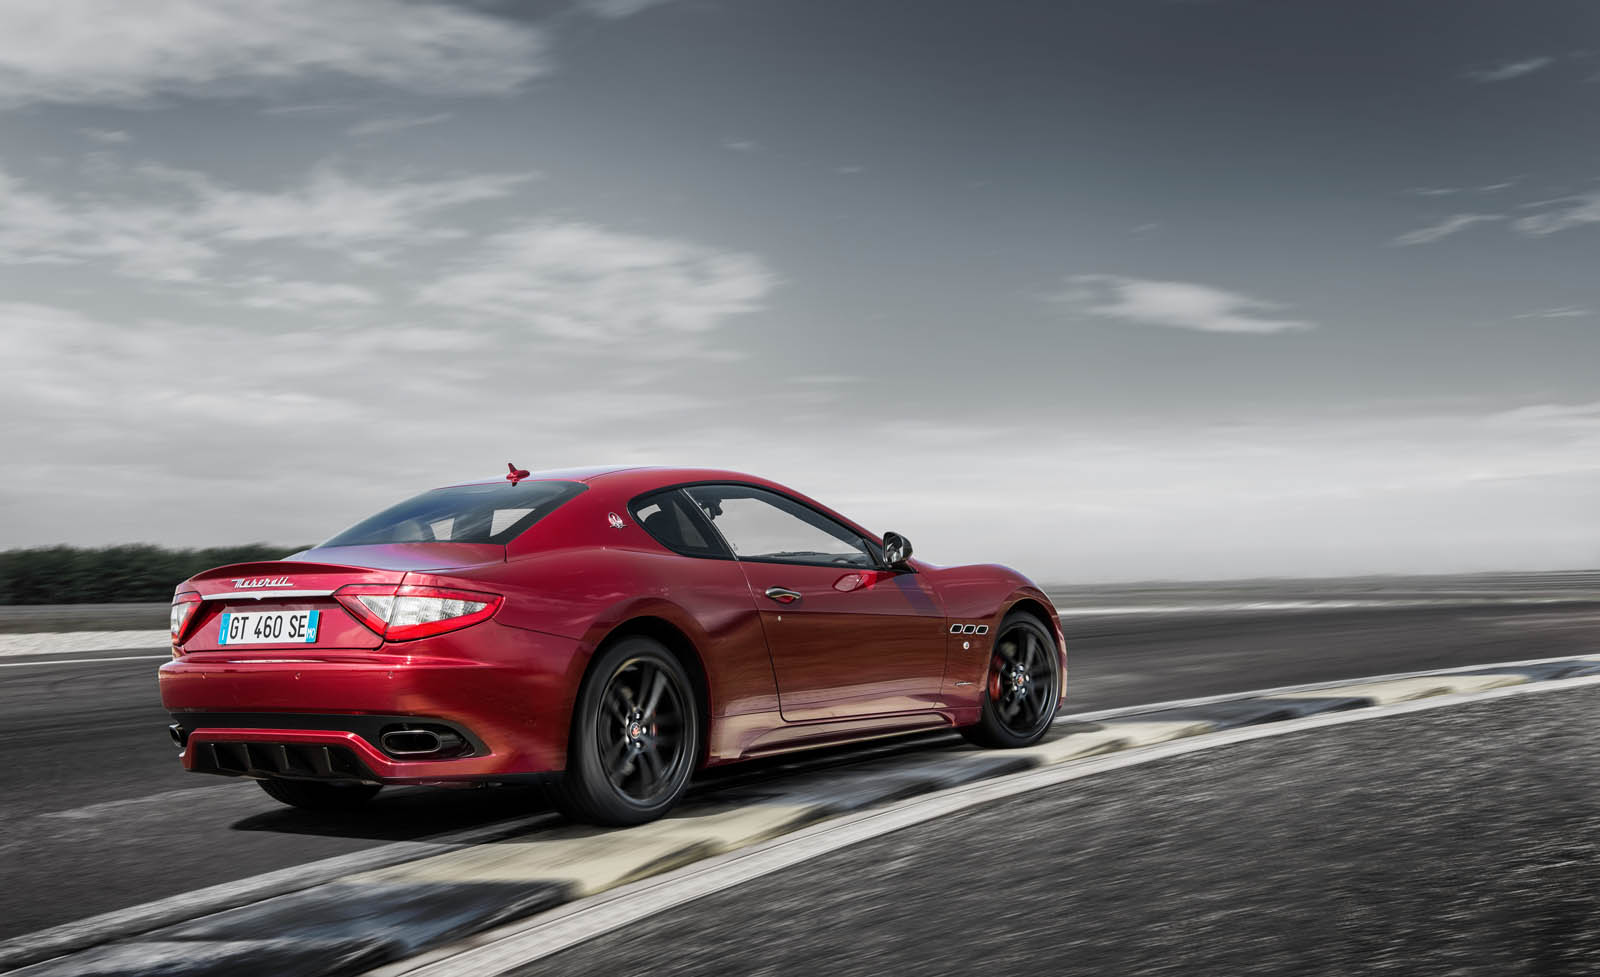 Maserati Reminds Us The GranTurismo Is Still Around With This Special Edition